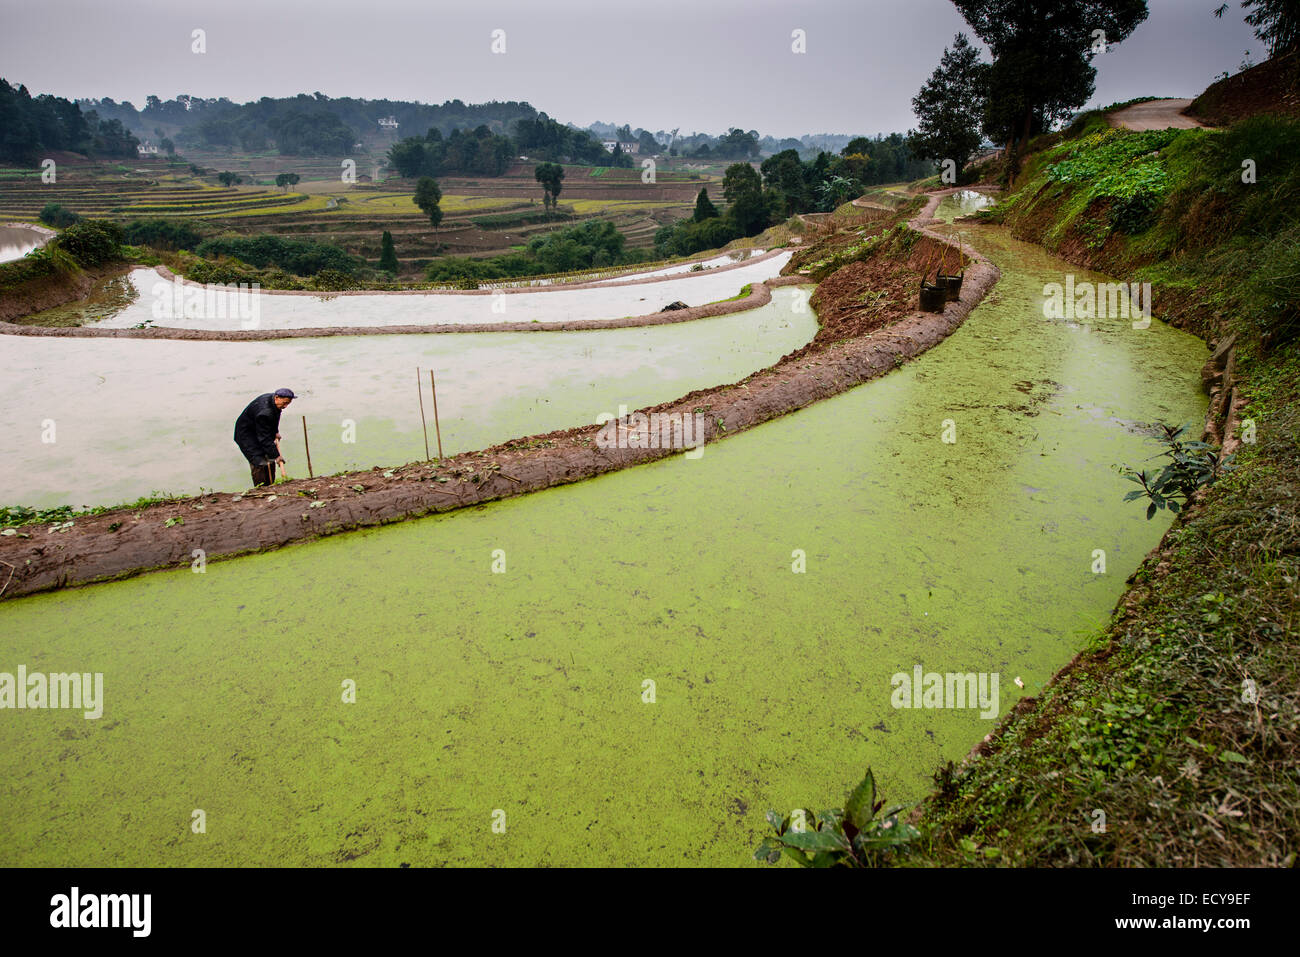 Traditional farming in terraces, Sichuan province, china - Stock Image